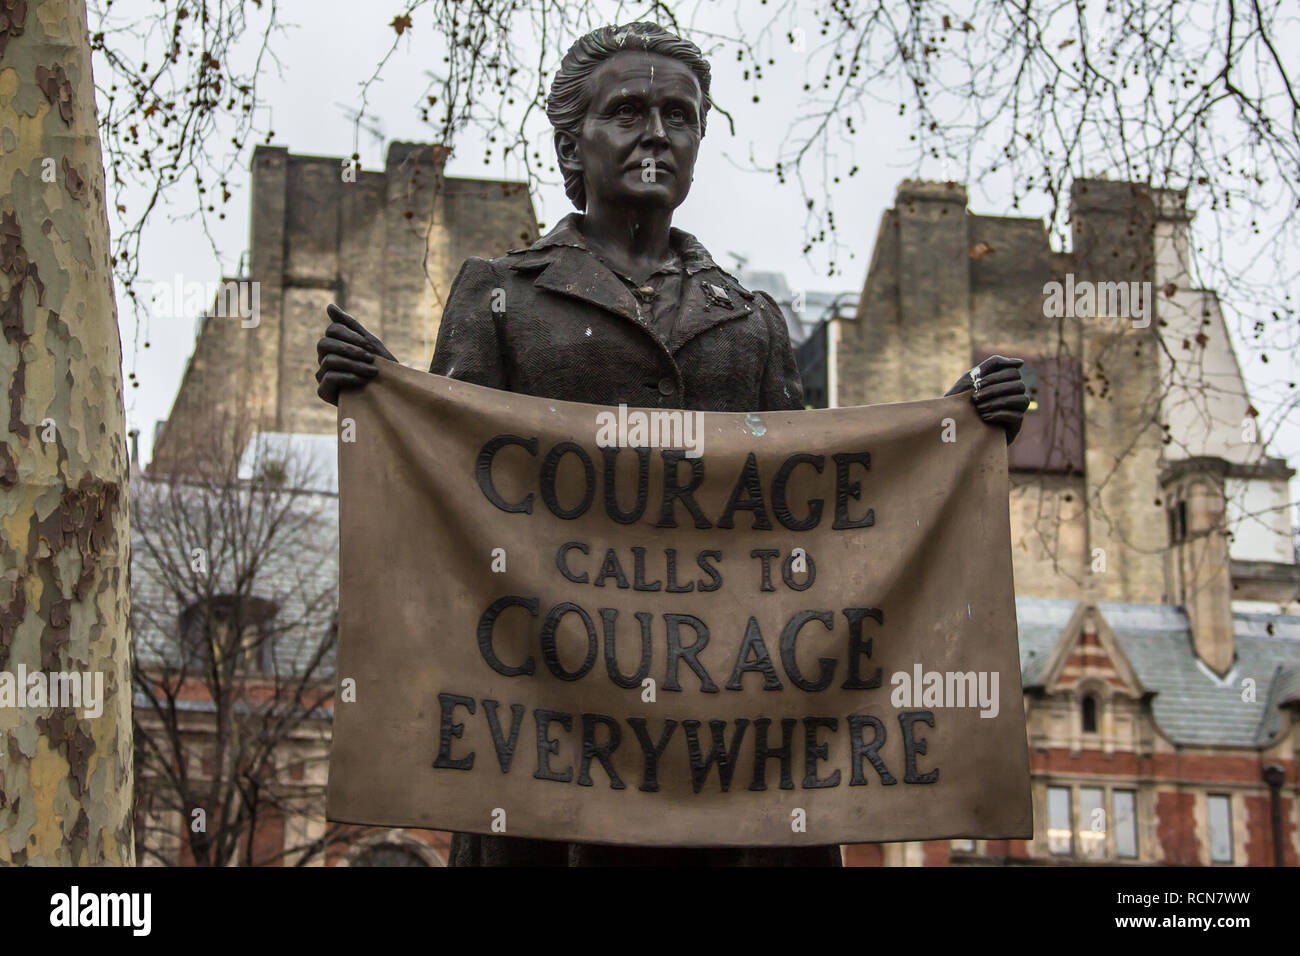 London, UK. 15th Jan, 2019. The protest took place under the Millicent Fawcett statue. Climate protesters from 'London Earth Strike' rallied in Parliament square to demand Government policy change to reverse climate change. Credit: David Rowe/Alamy Live News - Stock Image